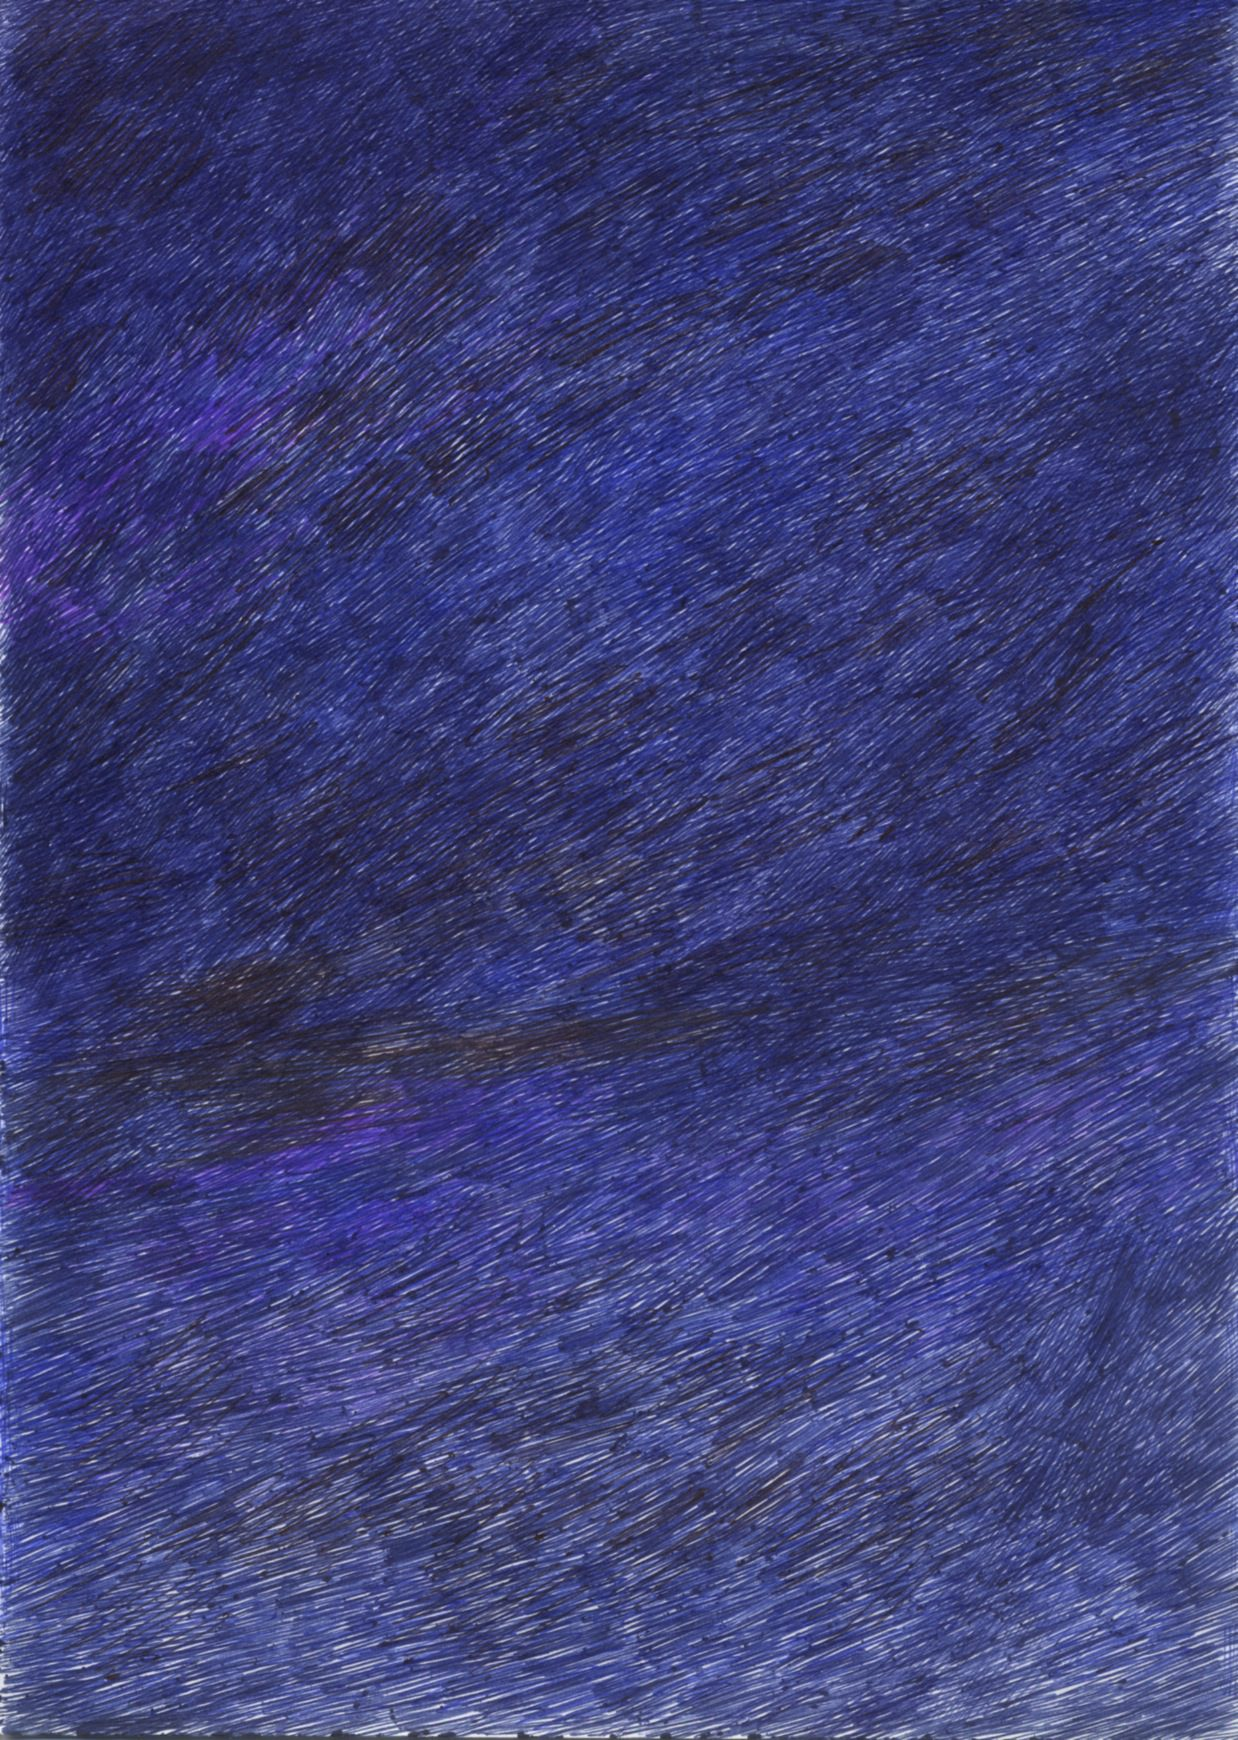 Untitled (Senza titolo), 2013, Ballpoint pen on paper, 11-1/2 x 8-1/4 inches